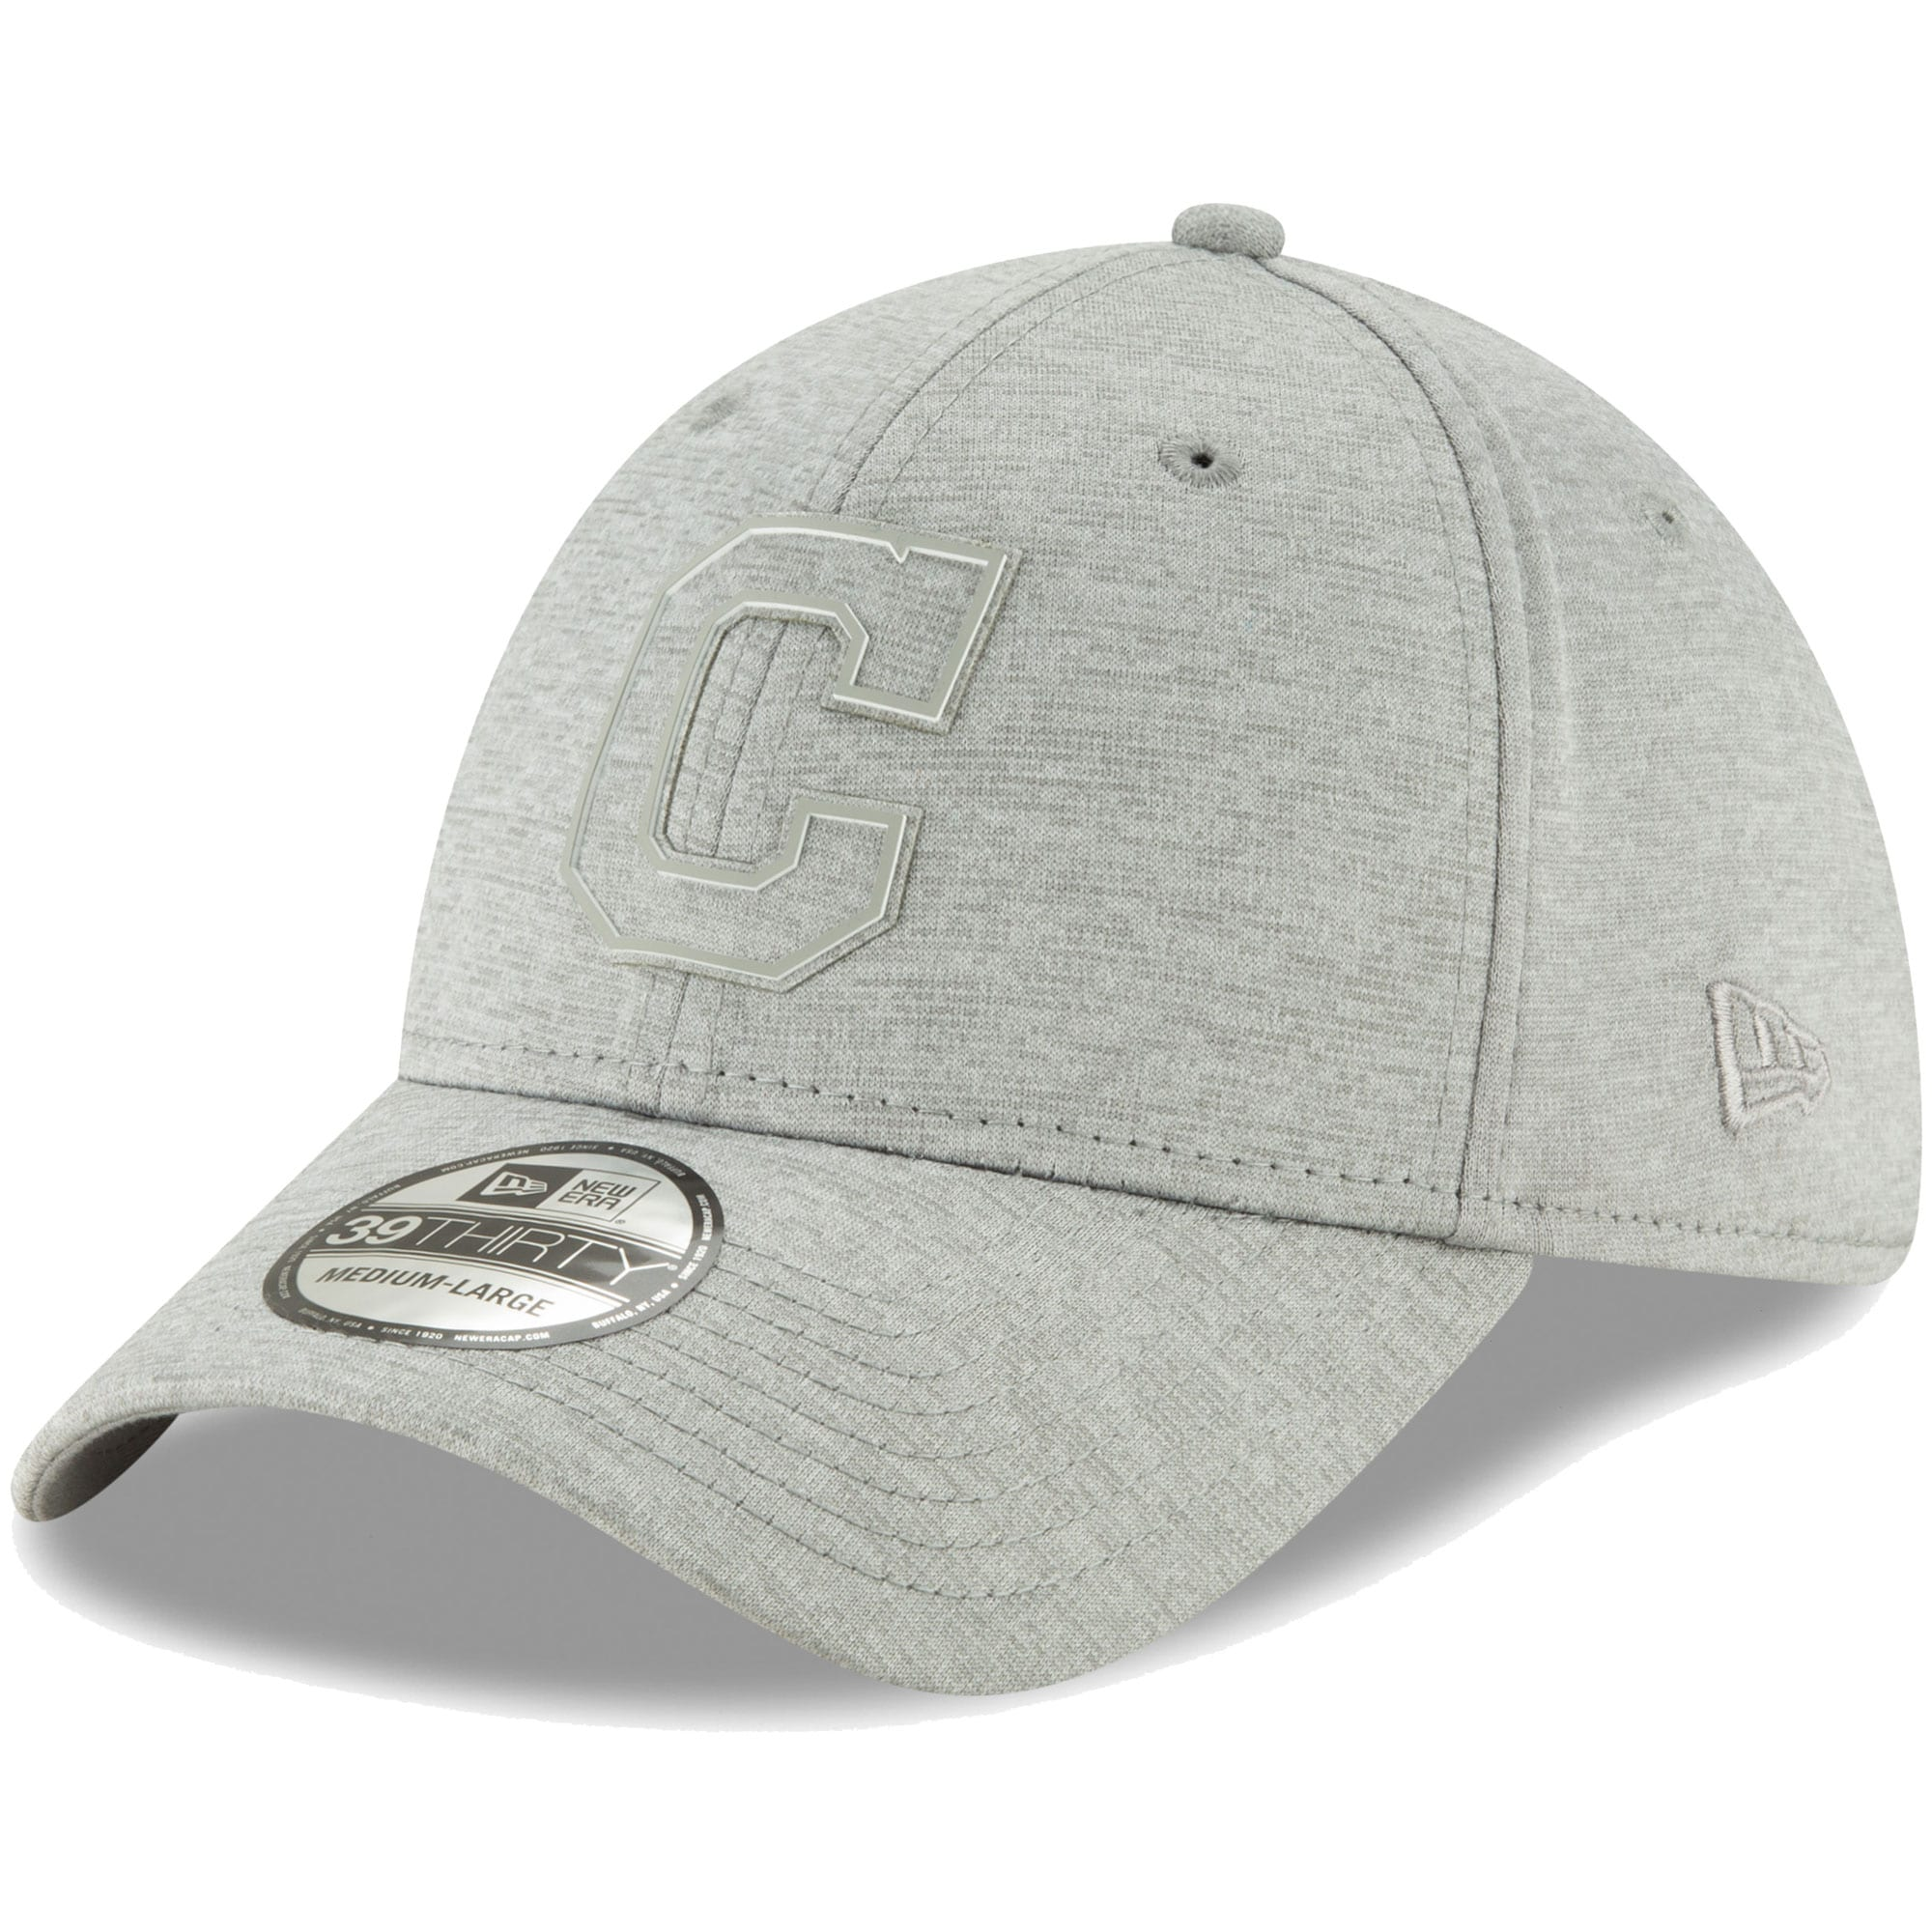 Cleveland Indians New Era Logo Shade 39THIRTY Flex Hat - Gray